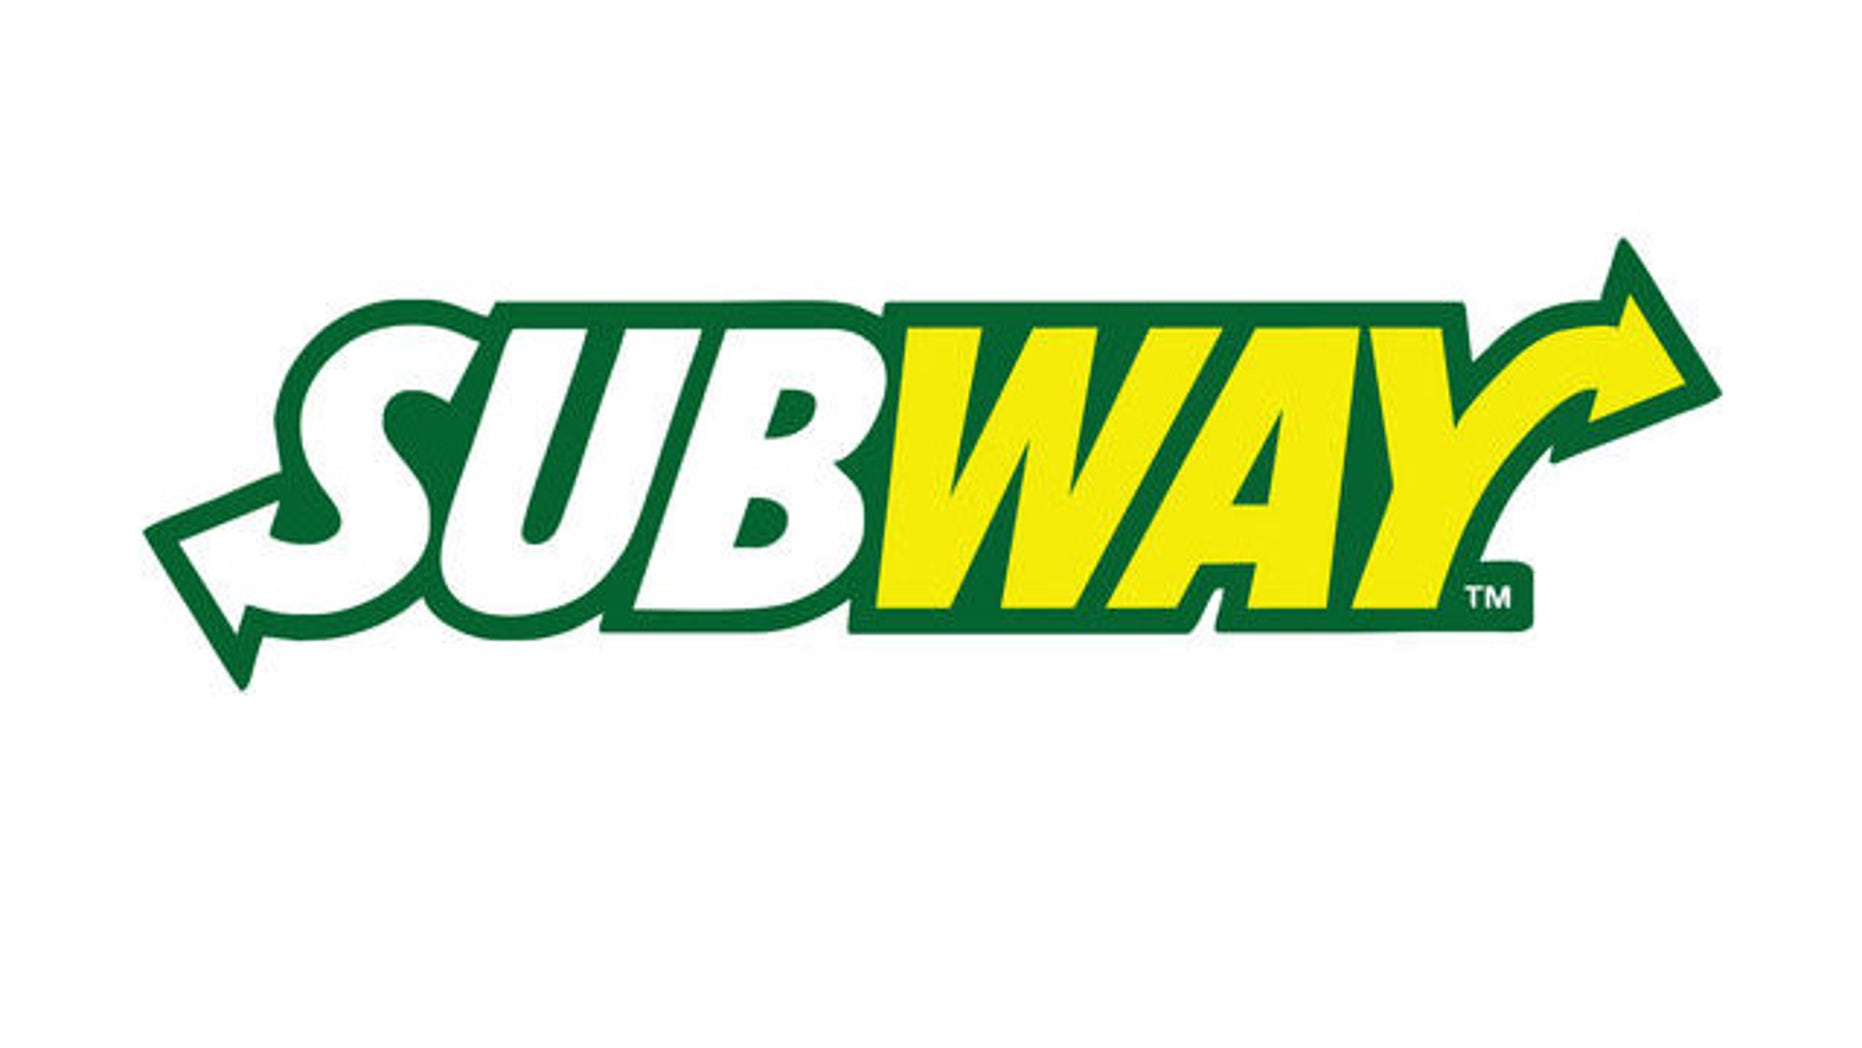 June 14, 2012: Subway unveils three new vegan sandwiches at select U.S. locations.